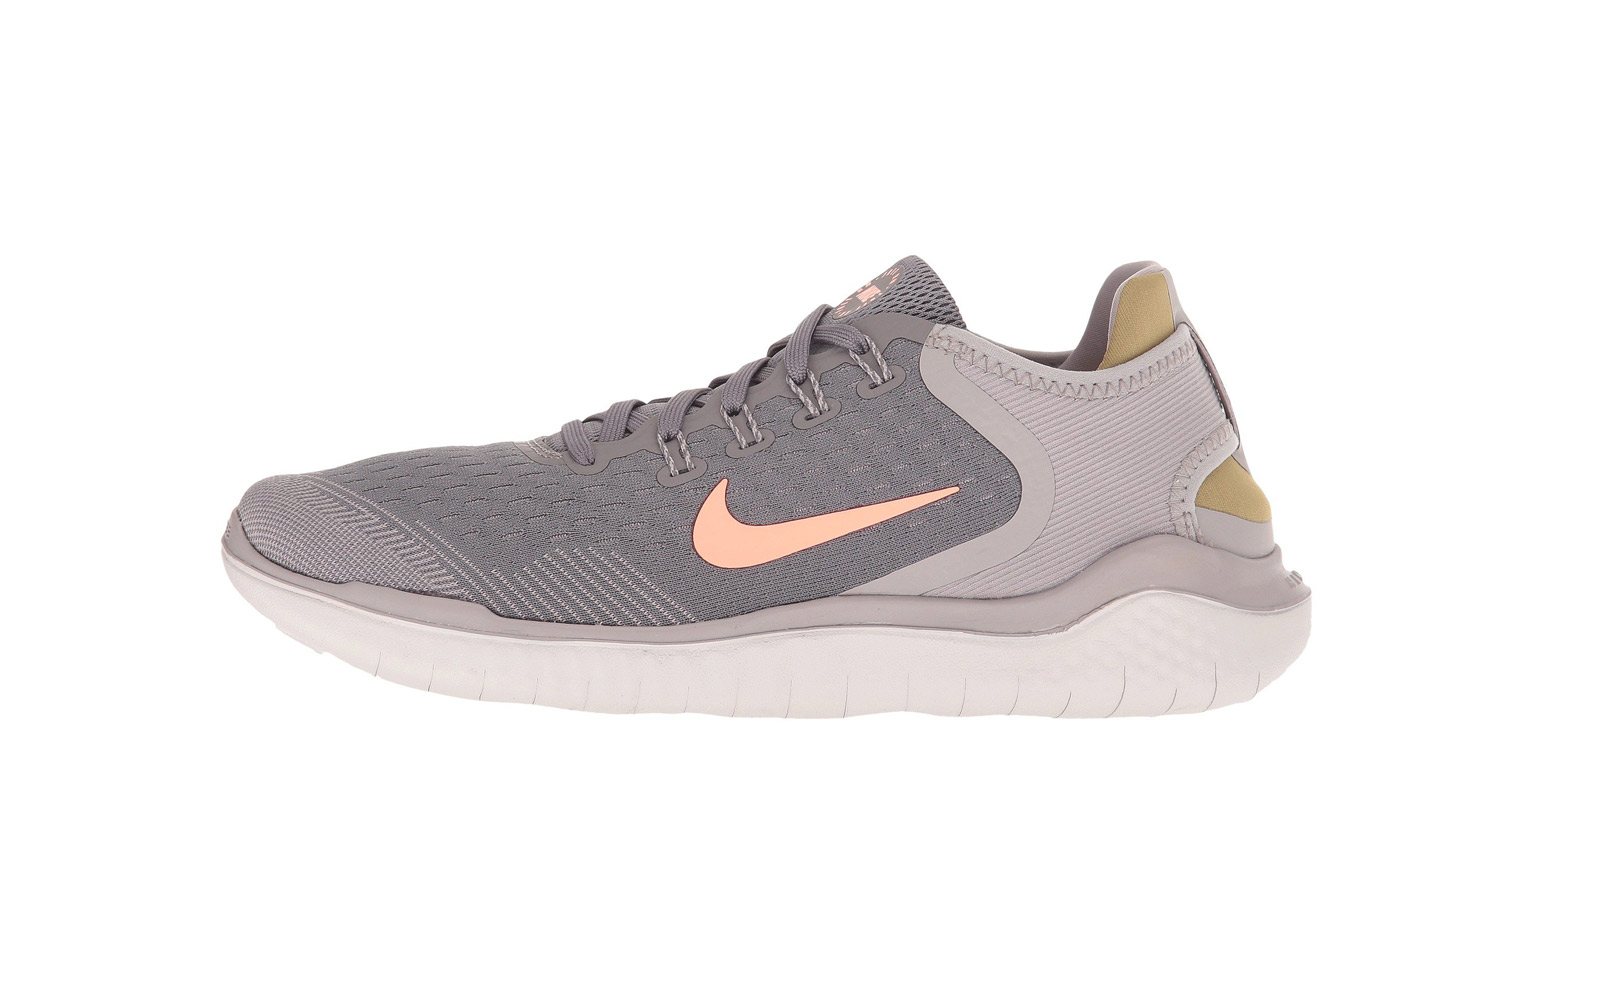 lowest price a14a3 512c5 19 Comfy, Travel-friendly Shoes Made for Walking   Travel + Leisure